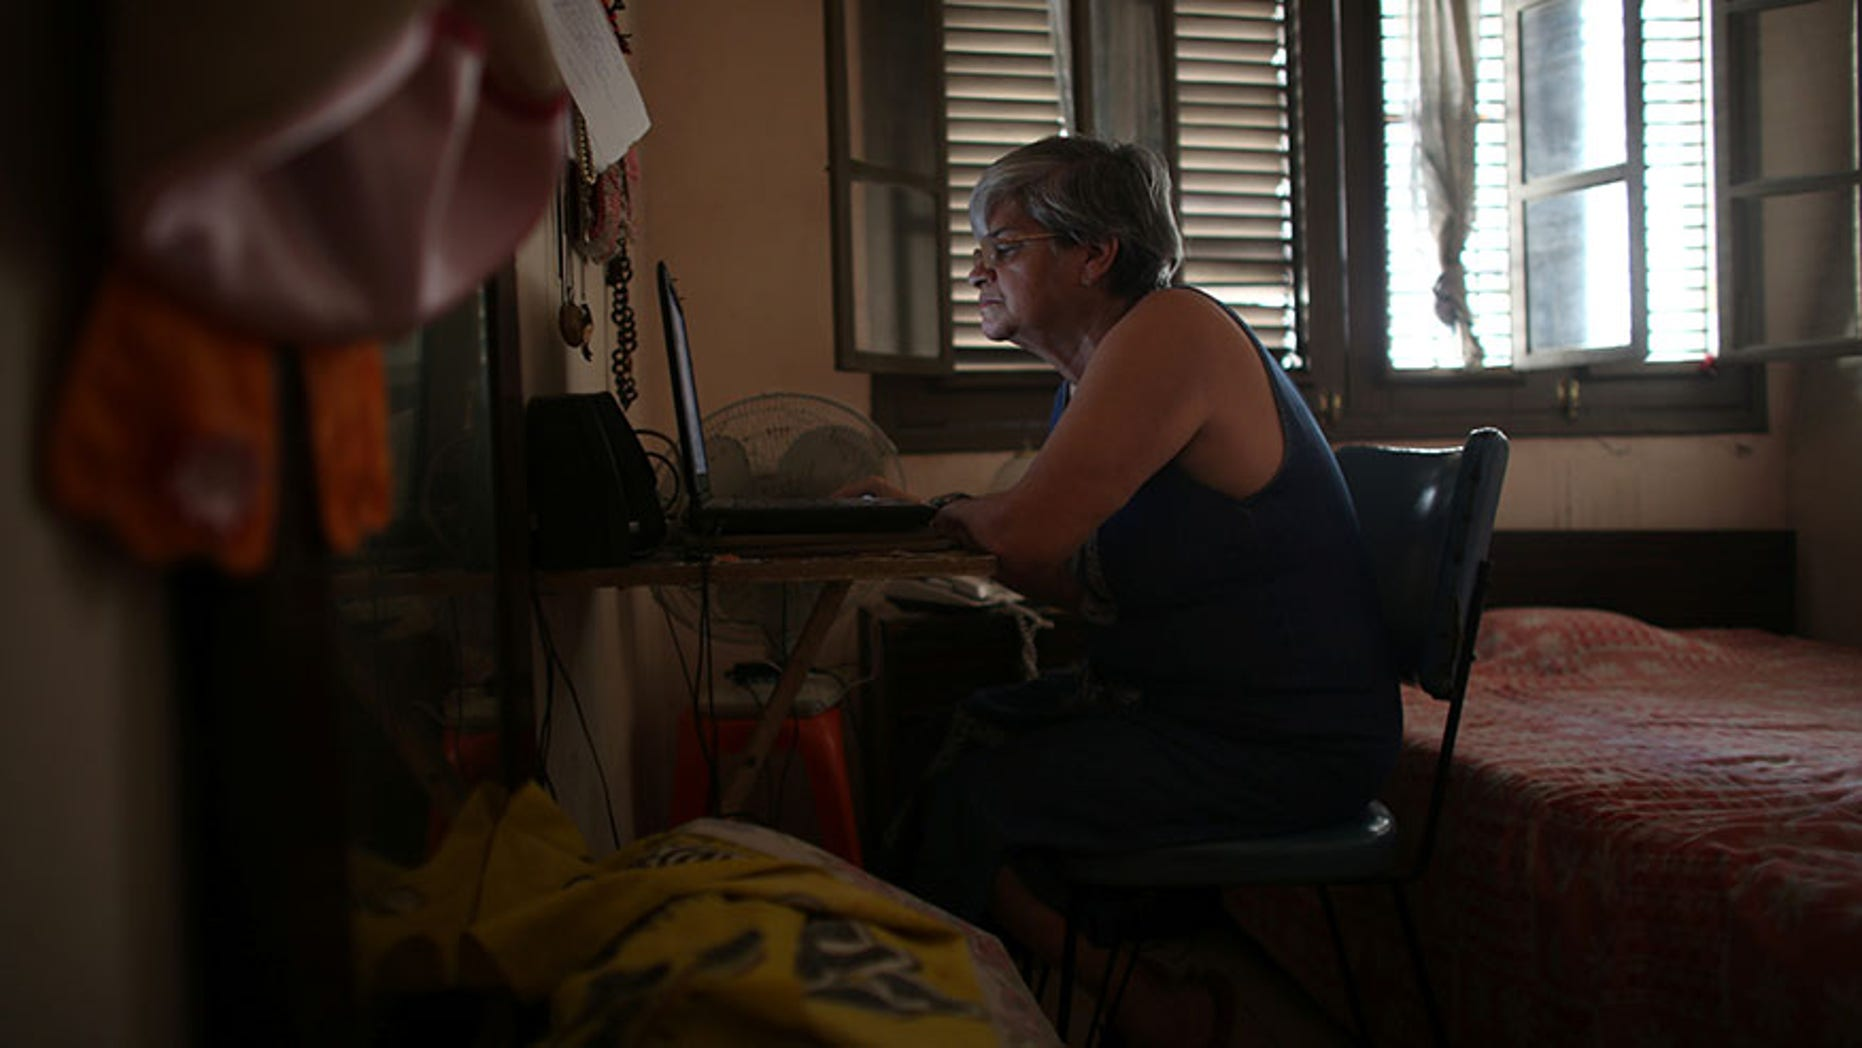 Cuba starts offering home internet service, but few are